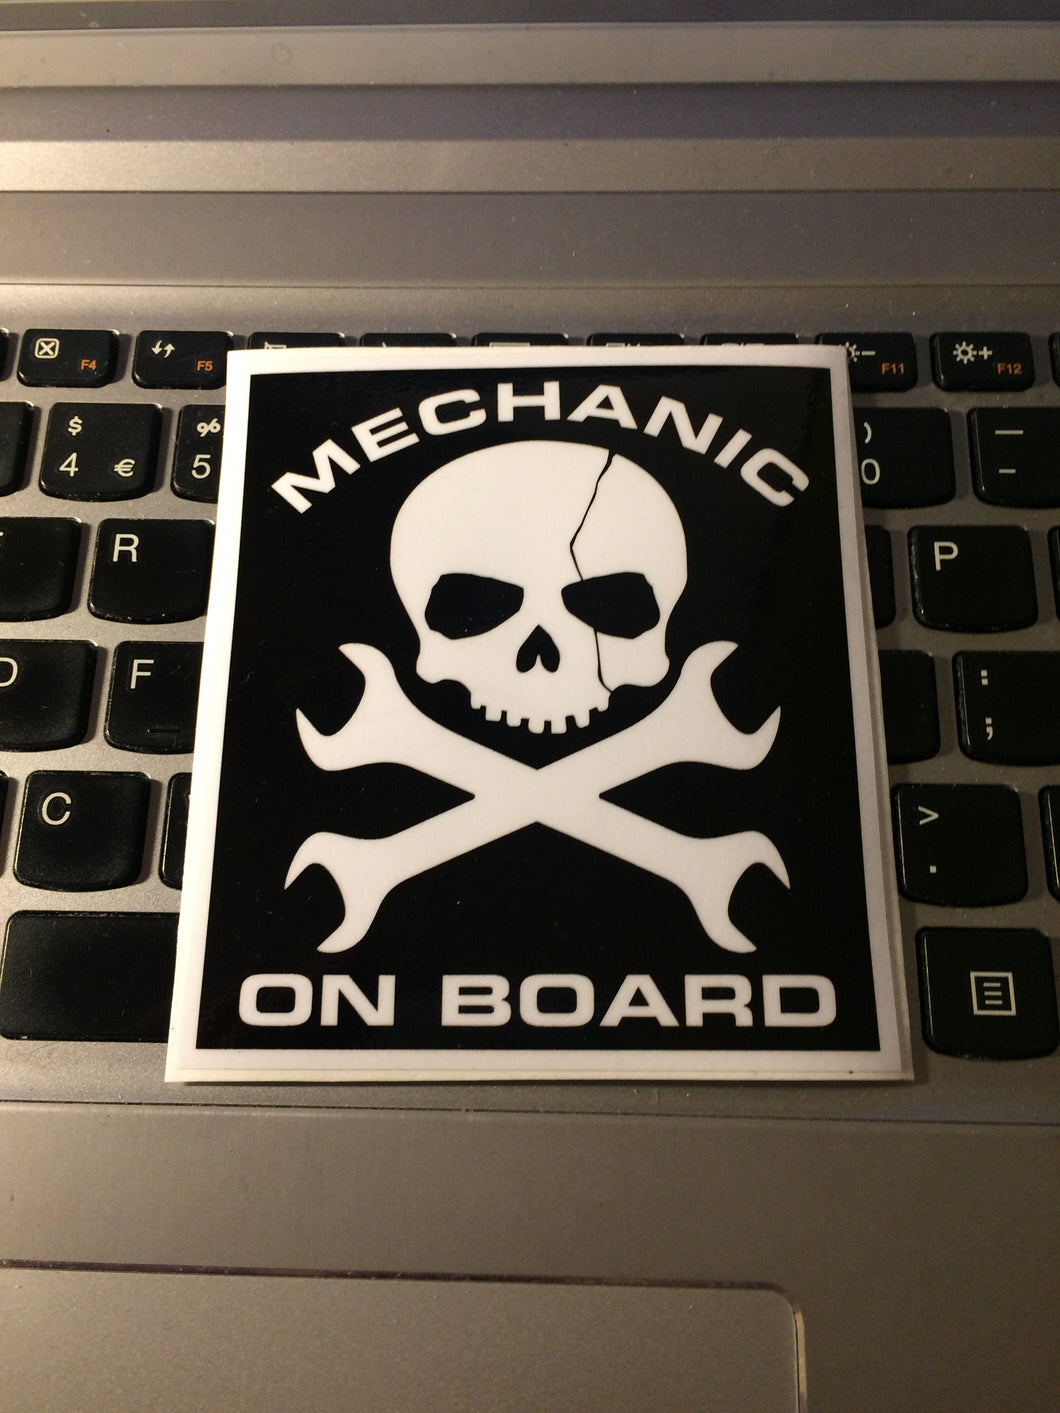 MECHANIC ON BOARD SKULL square Slap Sticker